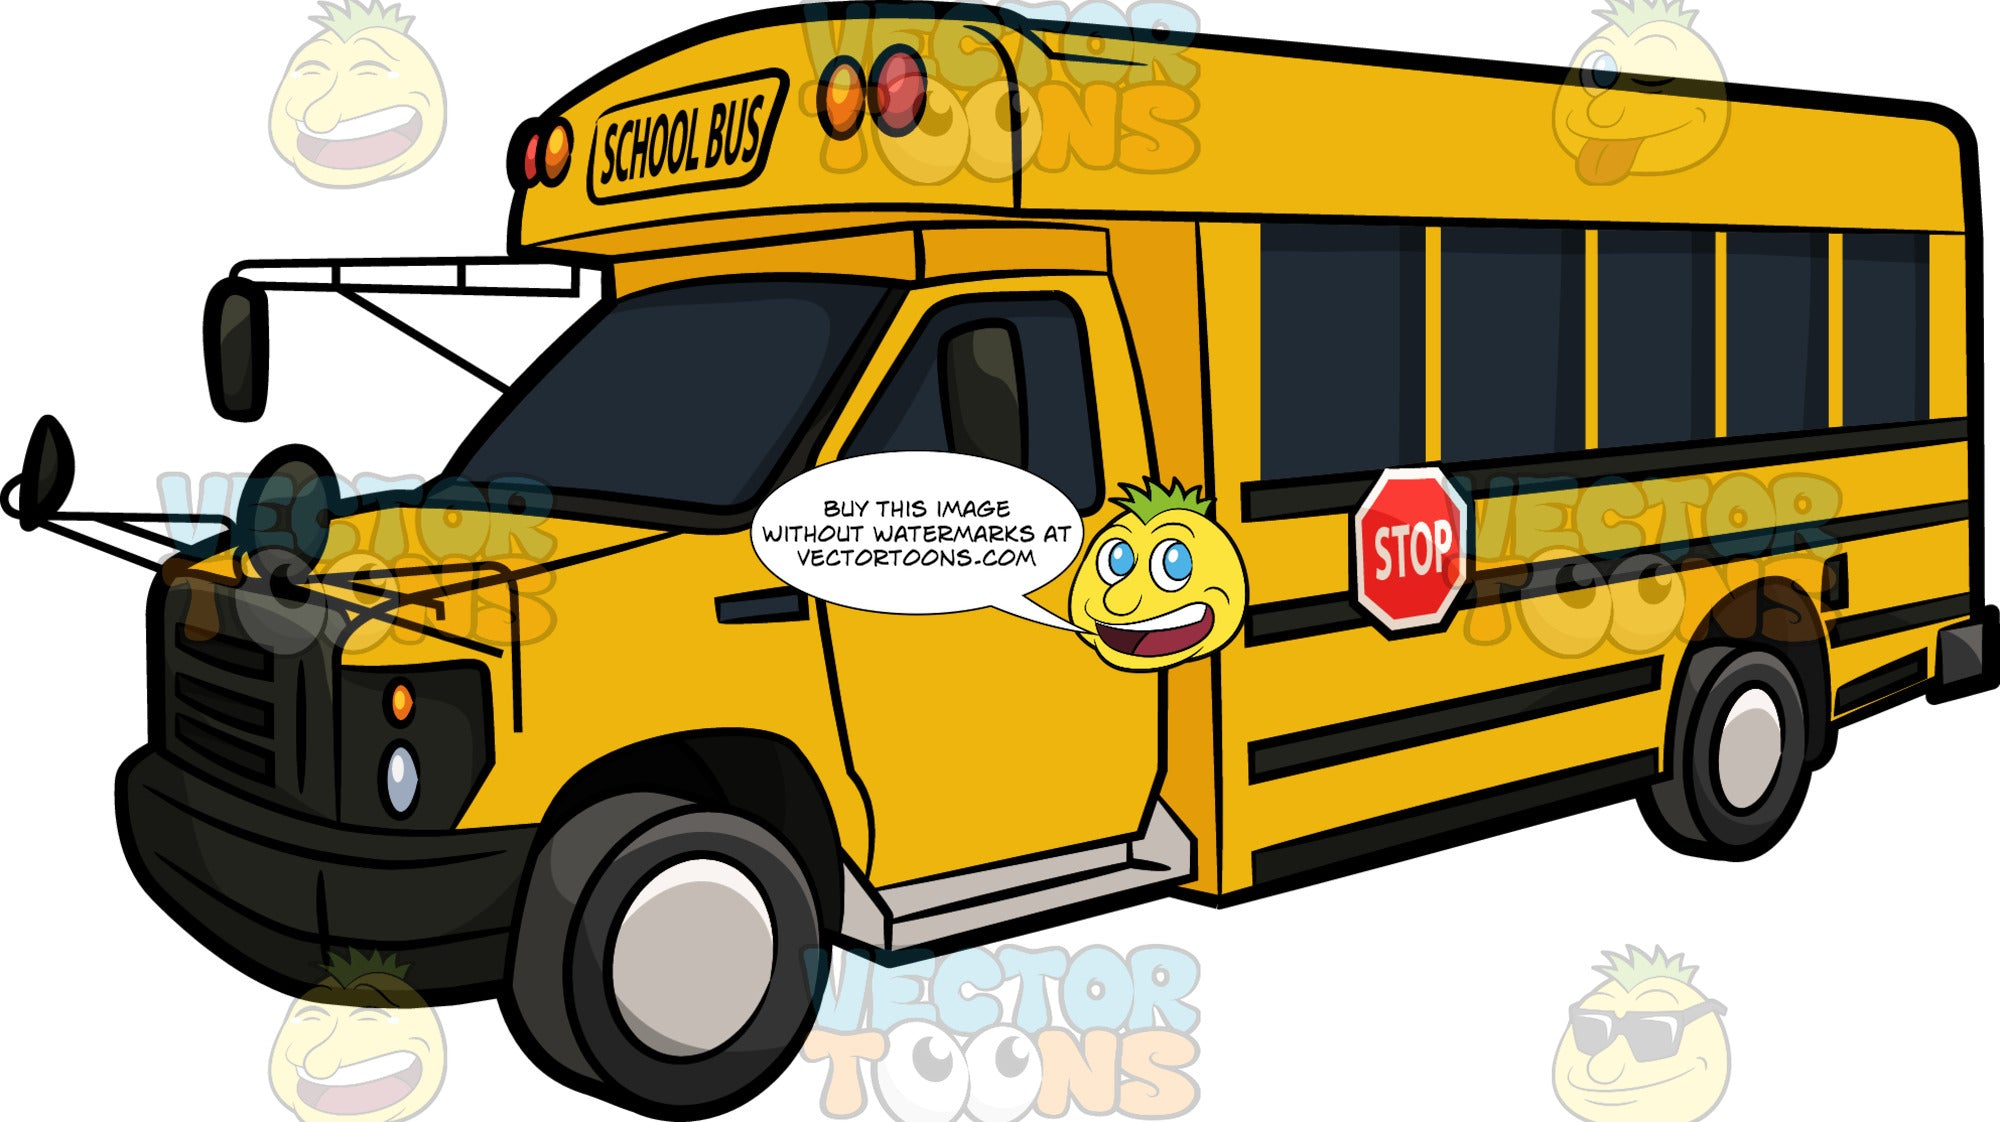 A Caravan Type School Bus